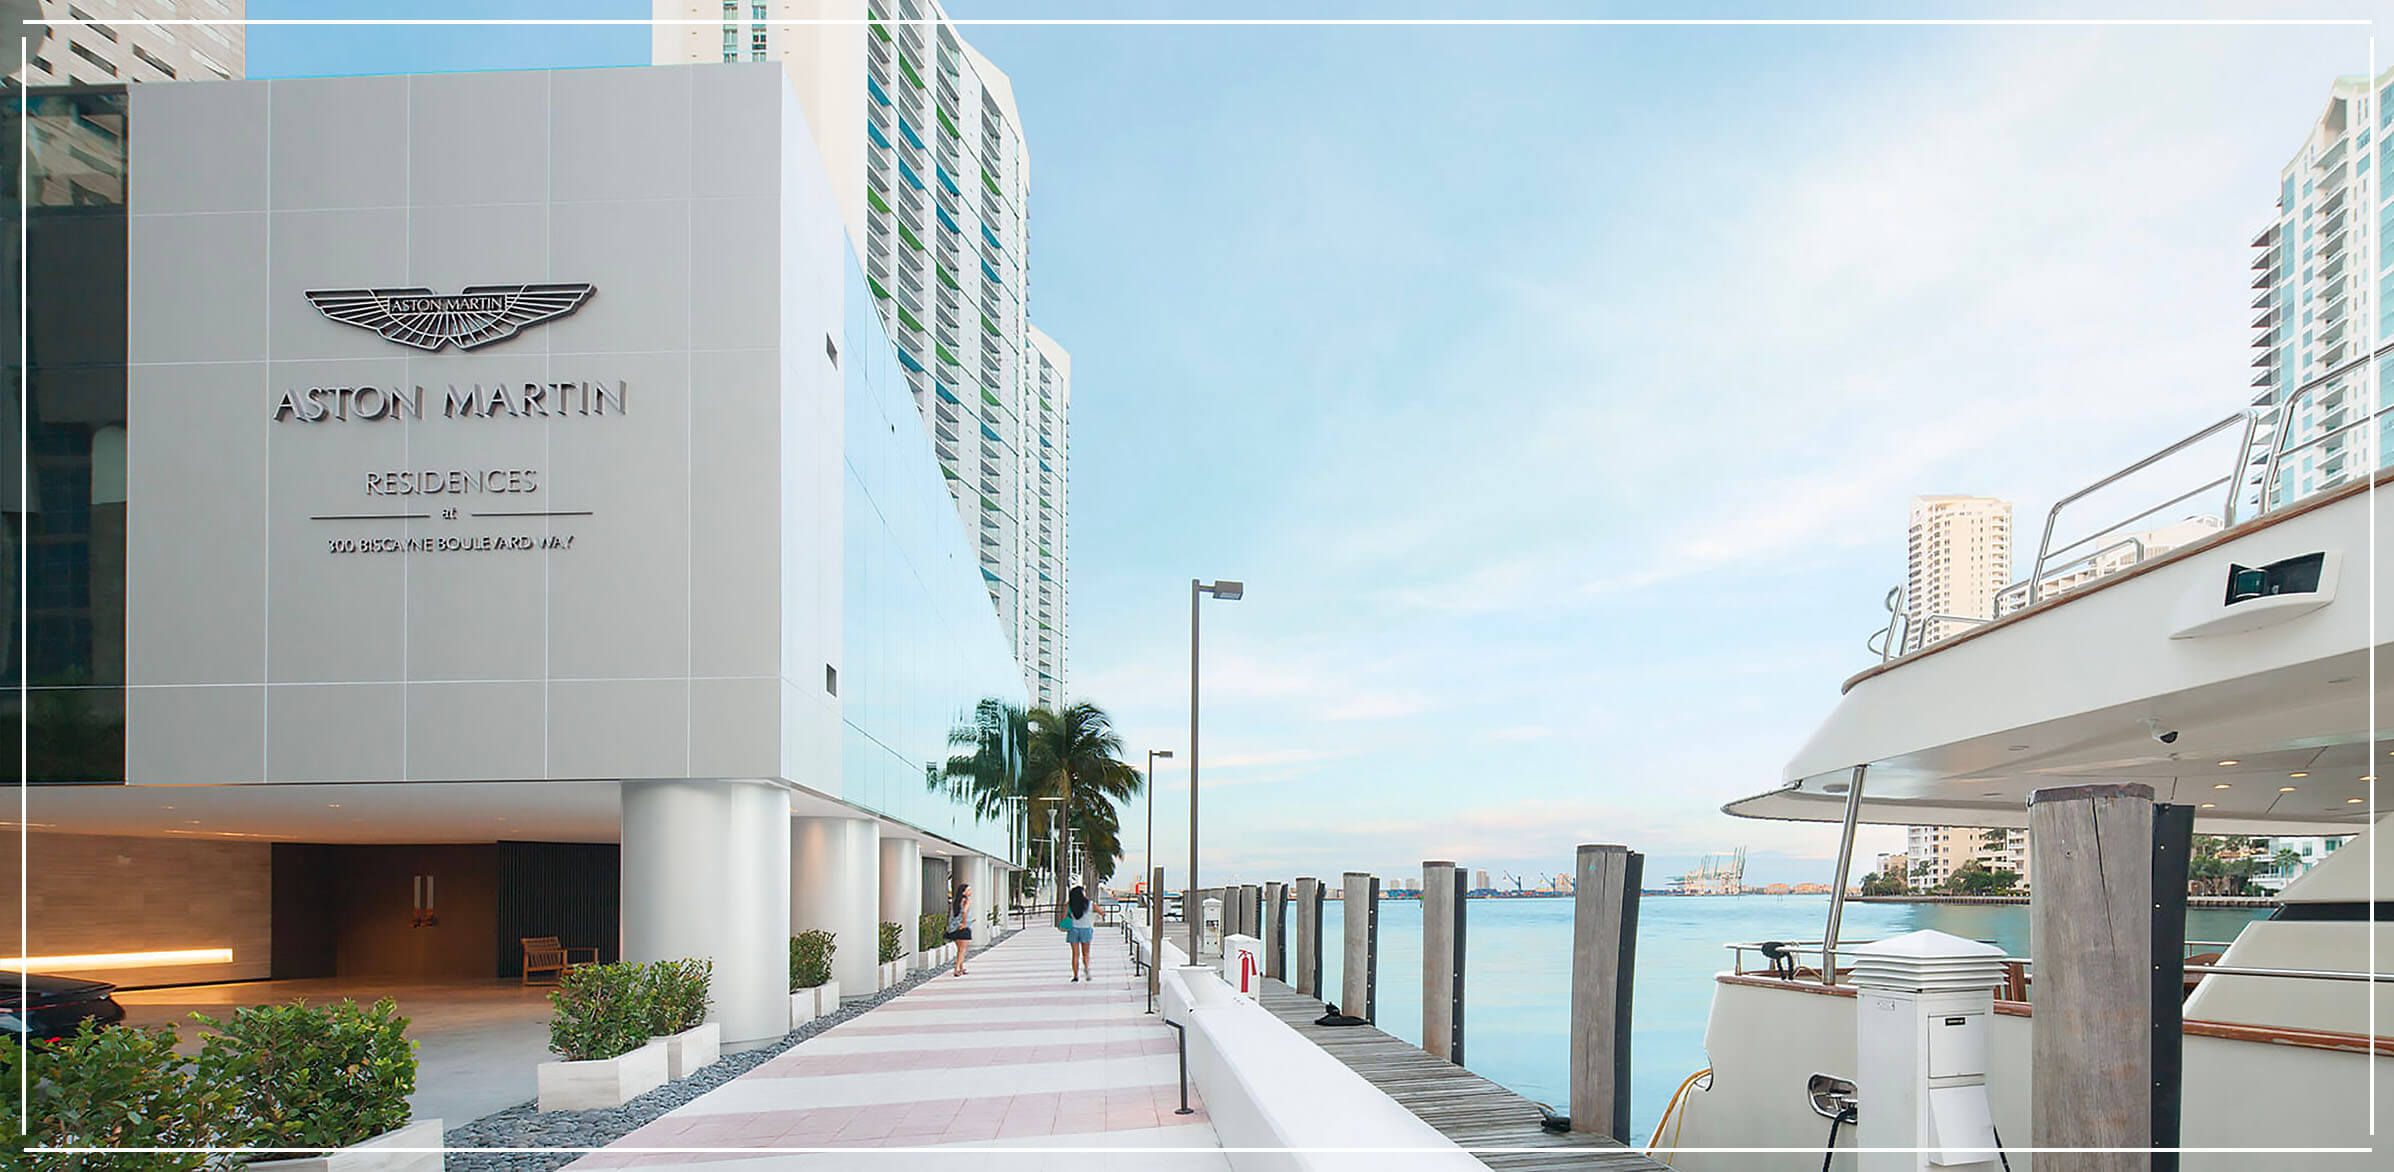 Aston Martin Residences Penthouses for Sale in Miami